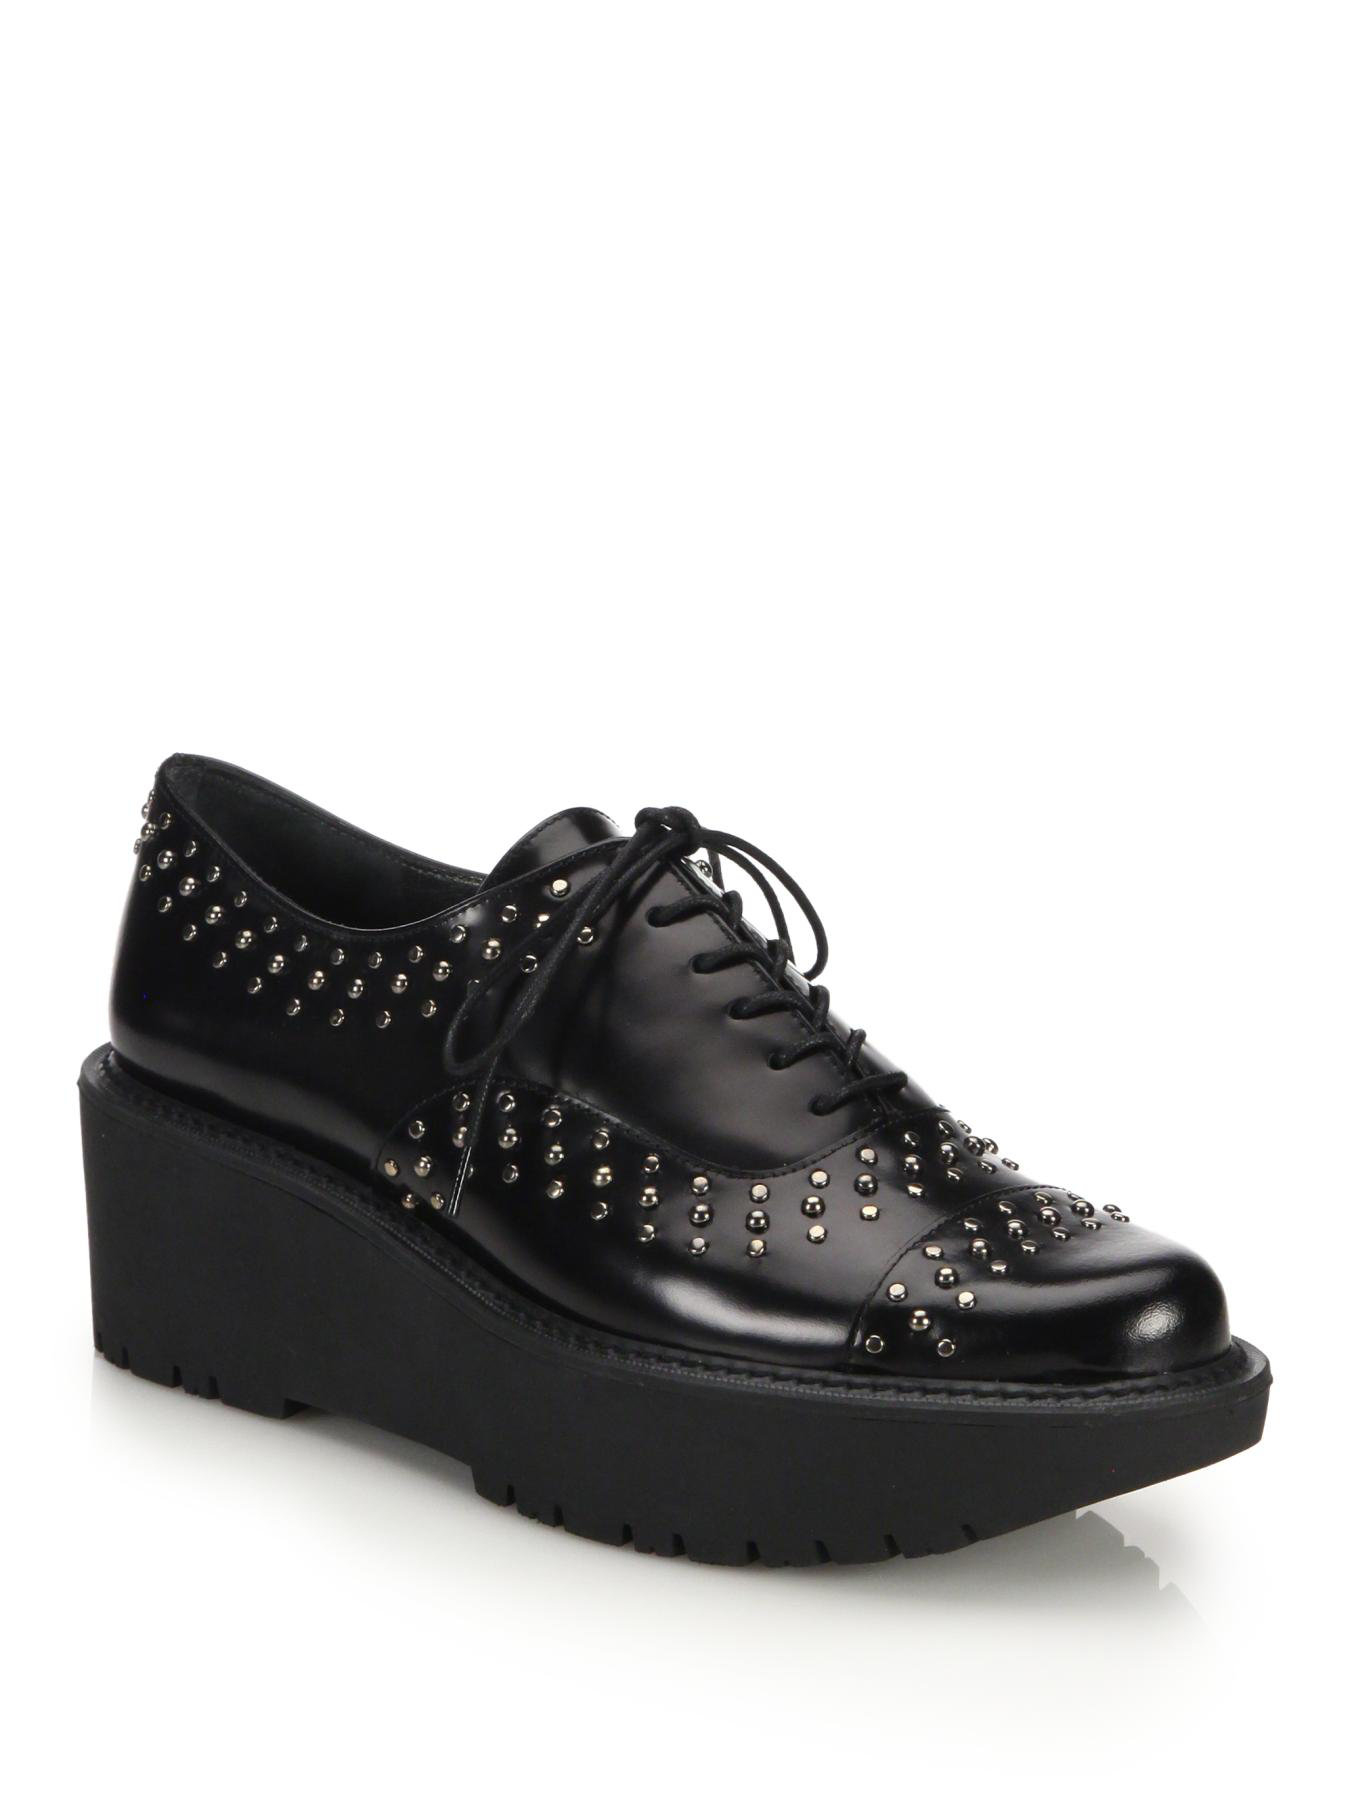 Stuart Weitzman Studded Platform Oxfords free shipping footlocker pictures fake online sale 2014 newest buy cheap 2015 new X0smCHZNhB